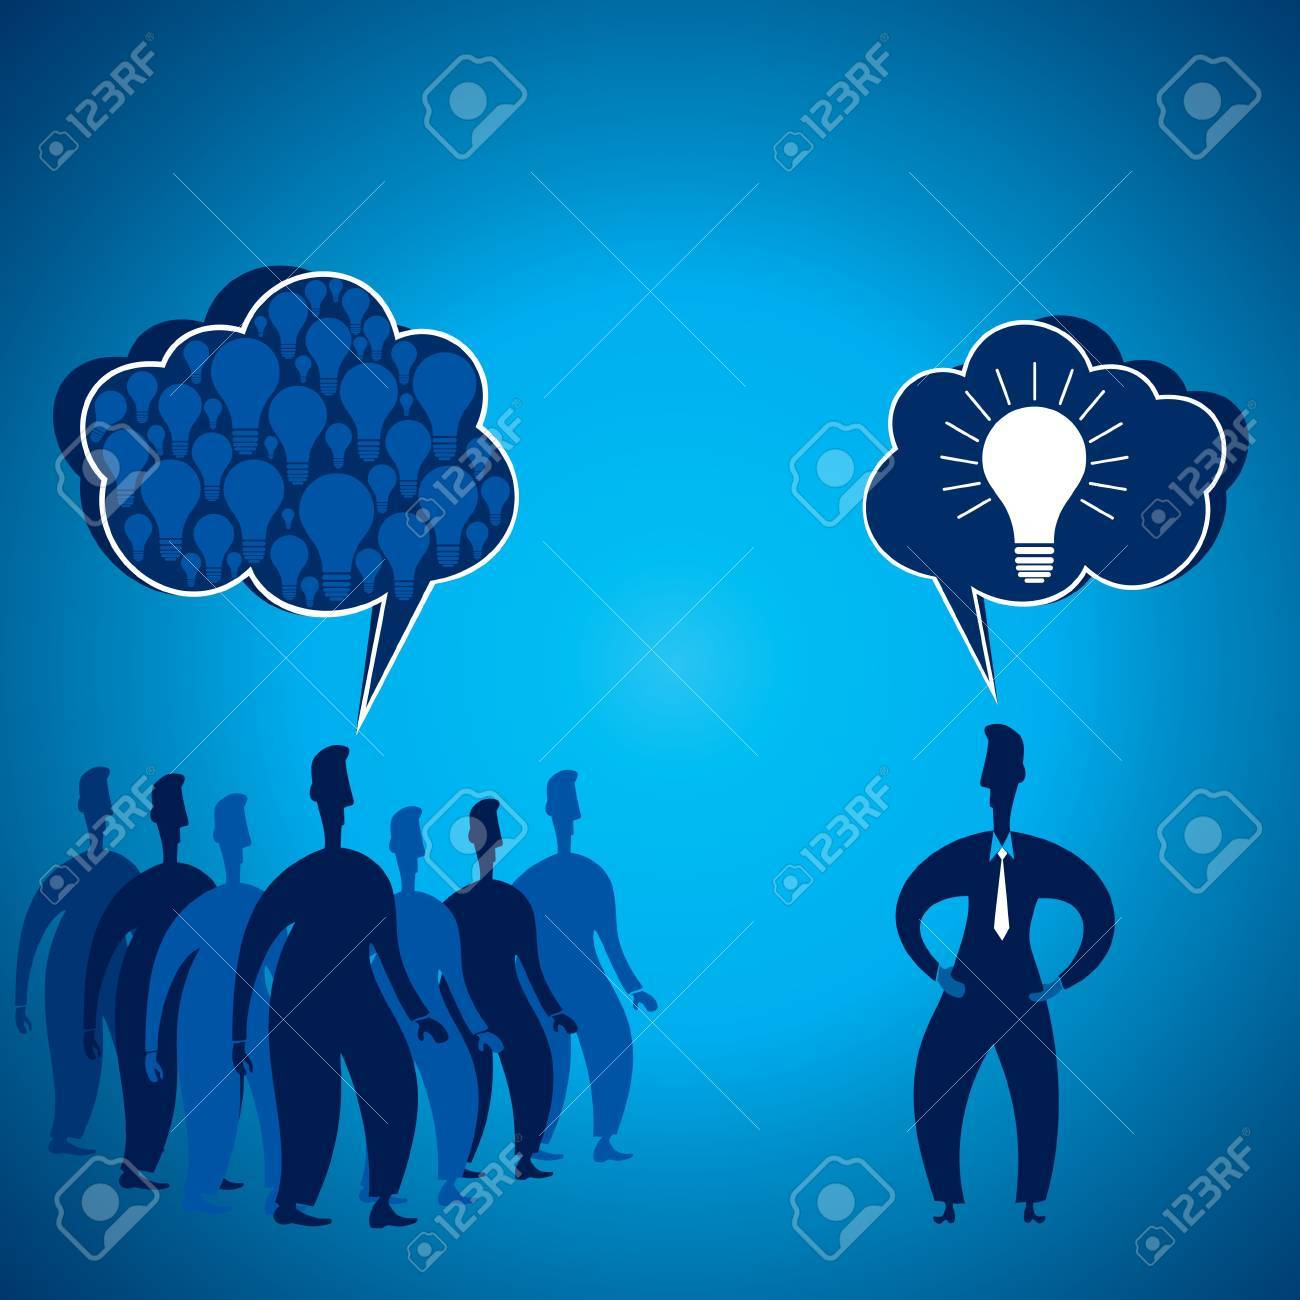 leadership oncept stock vector Stock Vector - 17108348